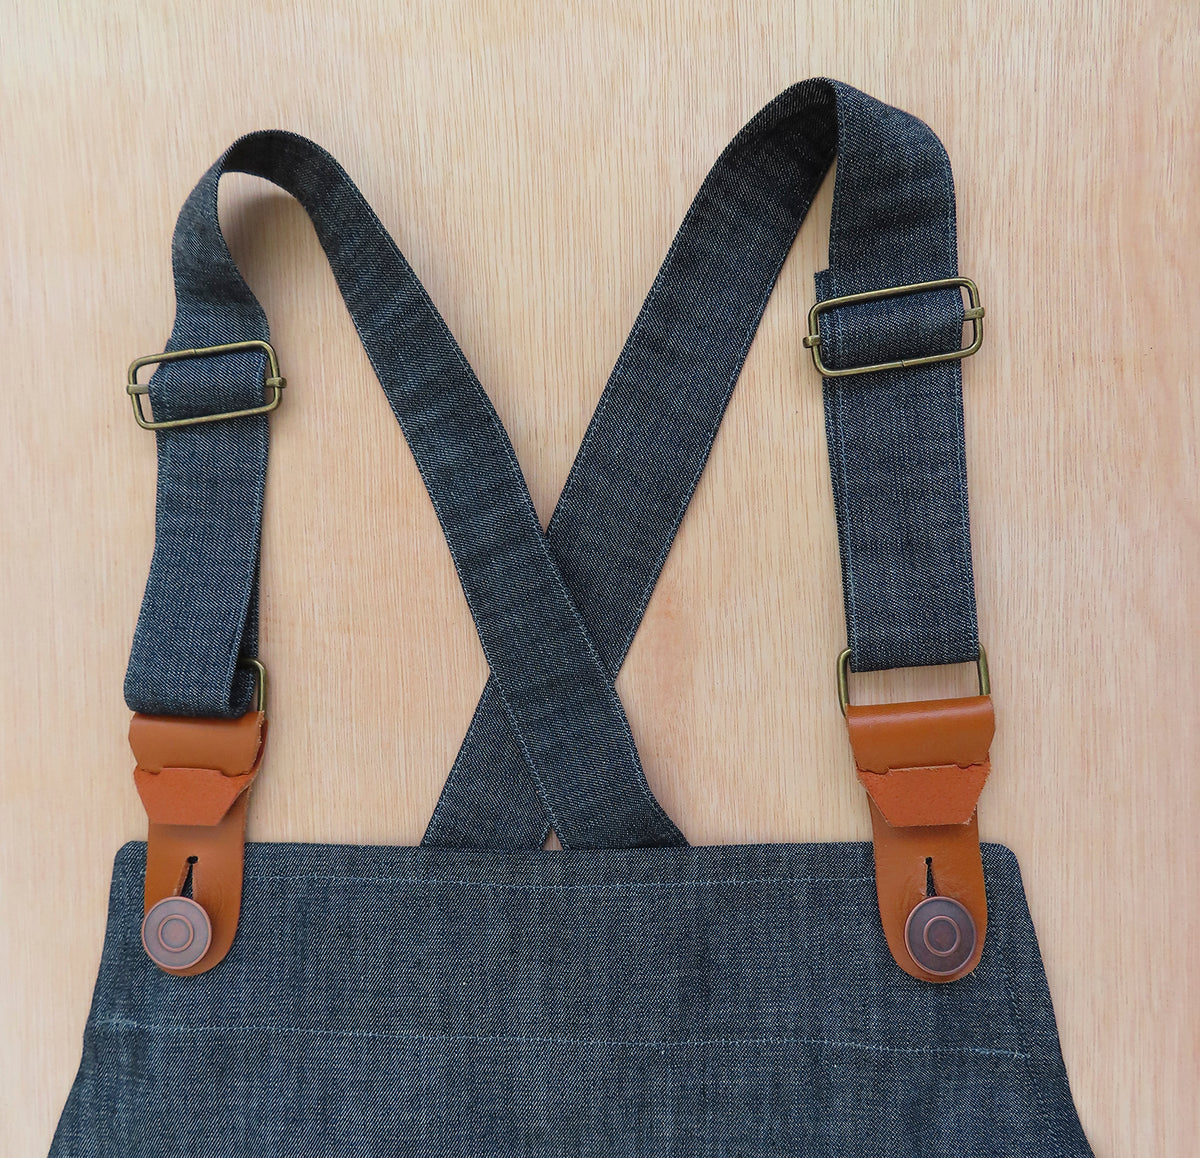 detail of denim apron